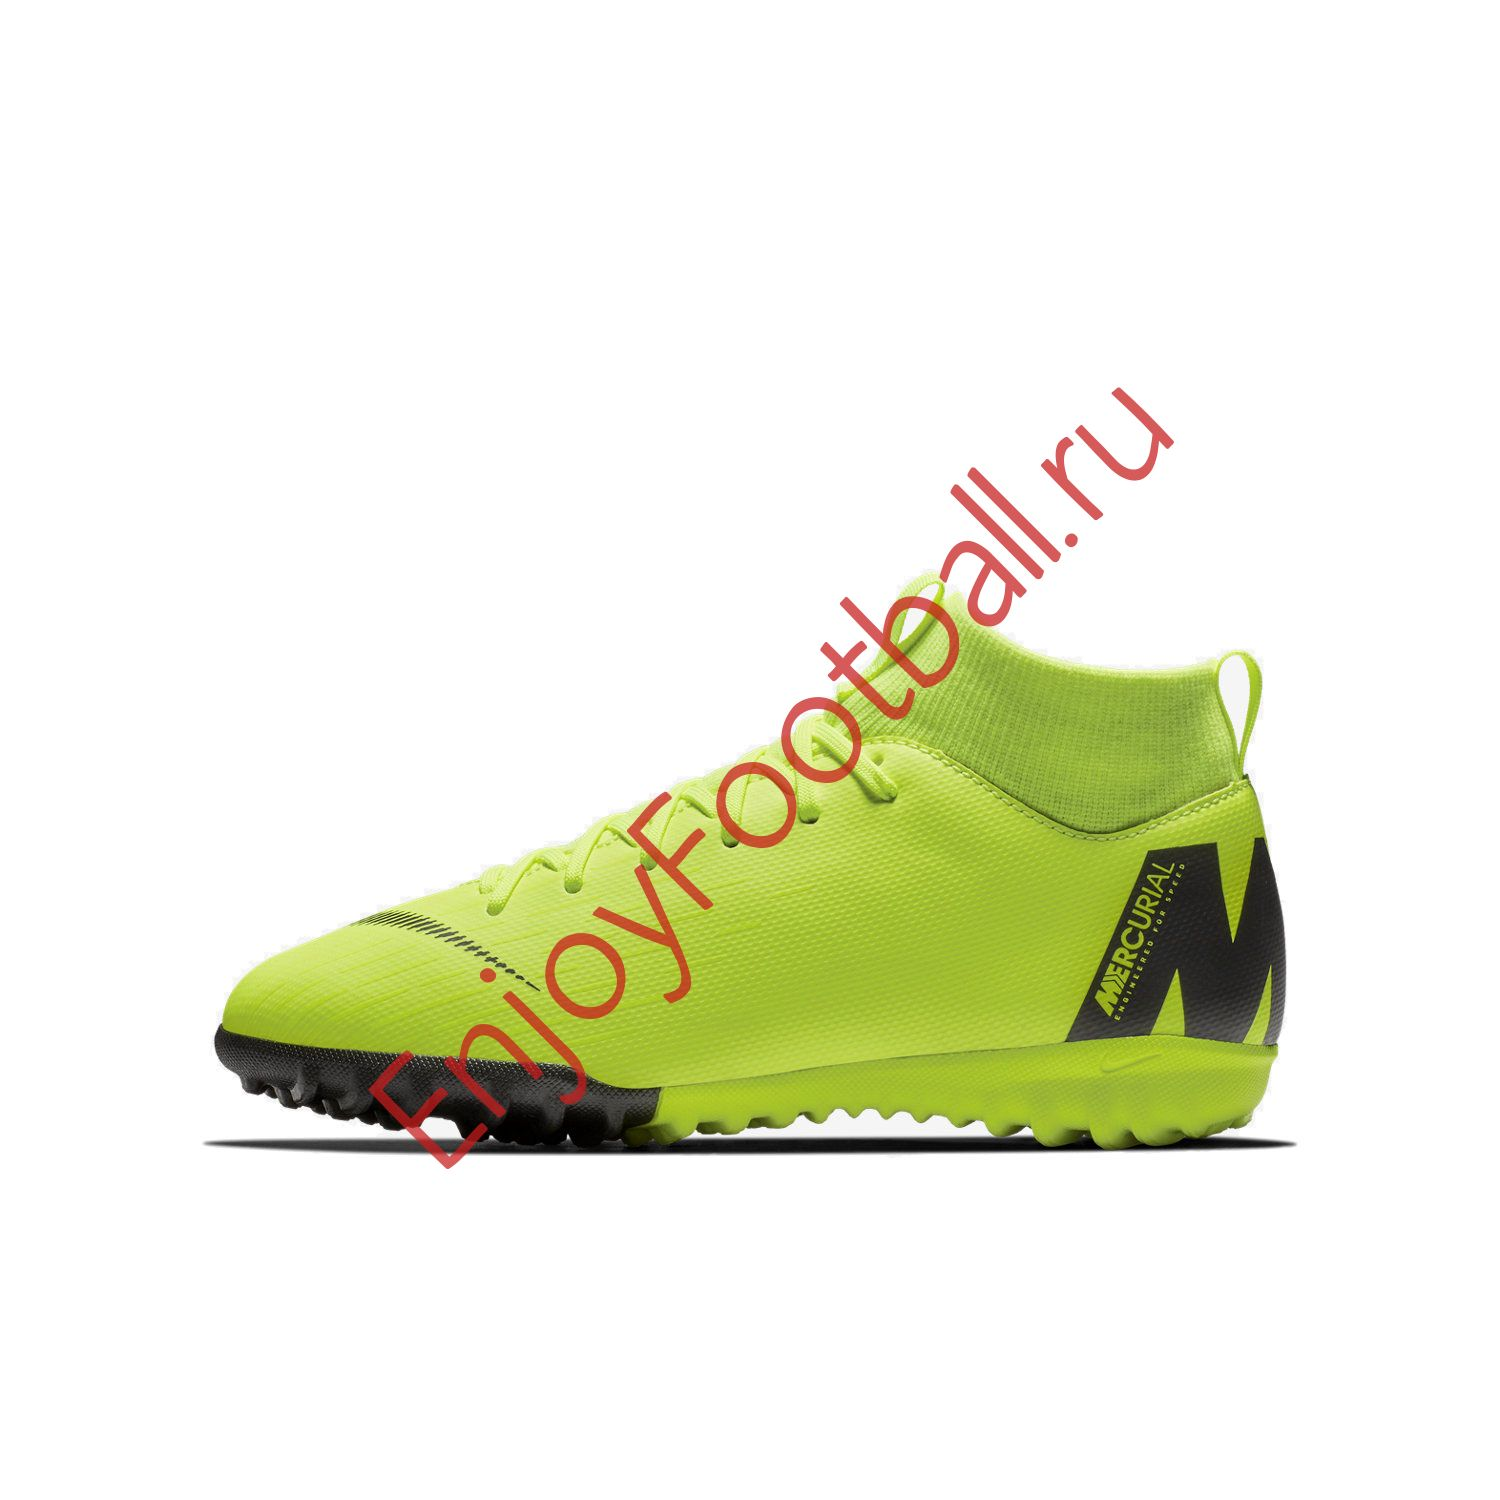 b4f907ae71b6 ... Детские шиповки NIKE SUPERFLYX VI ACADEMY GS TF AH7344-701 JR ...